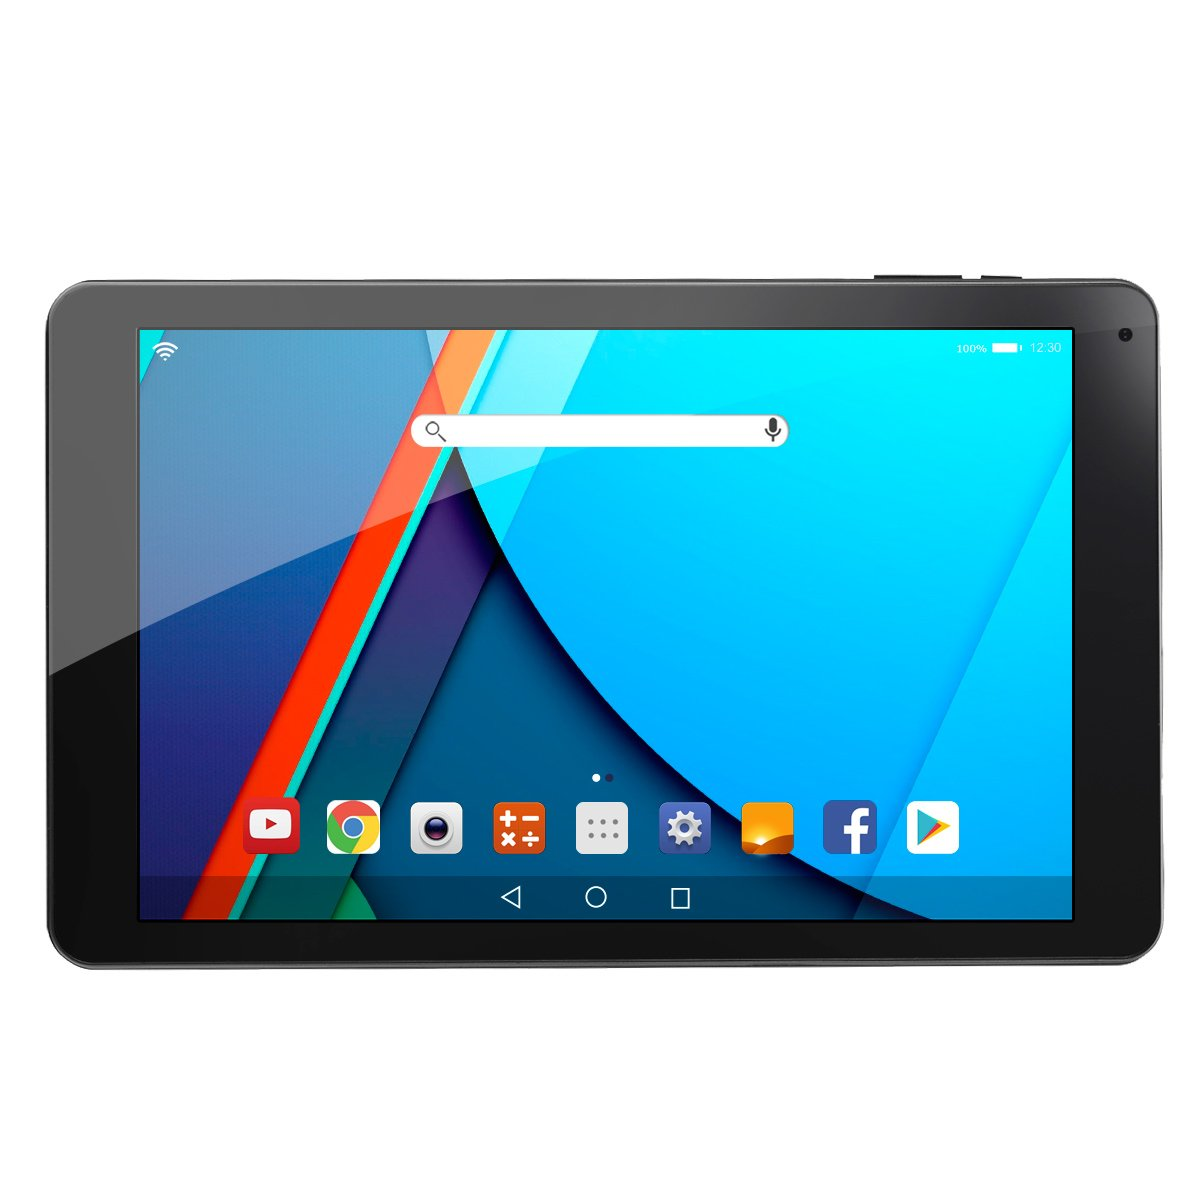 AOSON R101 10-Inch Android 6.0 Marshmallow MTK8163 Quad Core Tablet PC 2GB RAM 16GB internal Storage 1280x800 IPS HD Touch Screen Dual Camera Wi-Fi Bluetooth Black rear